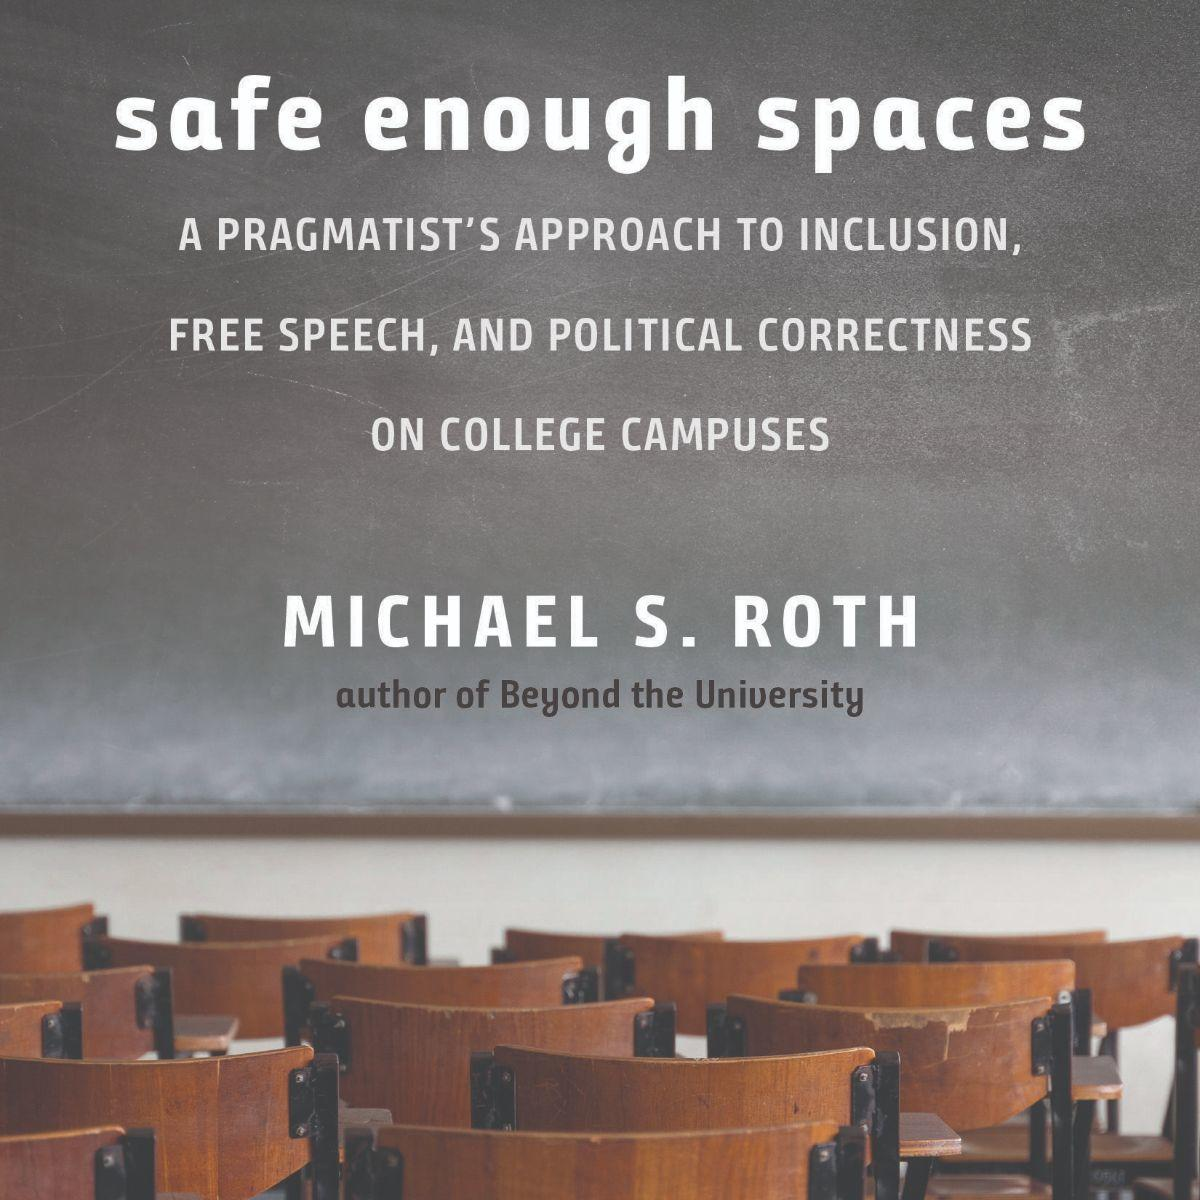 test Twitter Media - From President Michael Roth (@mroth78) comes a compassionate and provocative manifesto on the crises confronting higher education. Get your copy of #SafeEnoughSpaces TODAY via @yalepress: https://t.co/rmGH8aFGrV  #FreeSpeech #IntellectualDiversity #AcademicFreedom https://t.co/3oEIF1dpEr